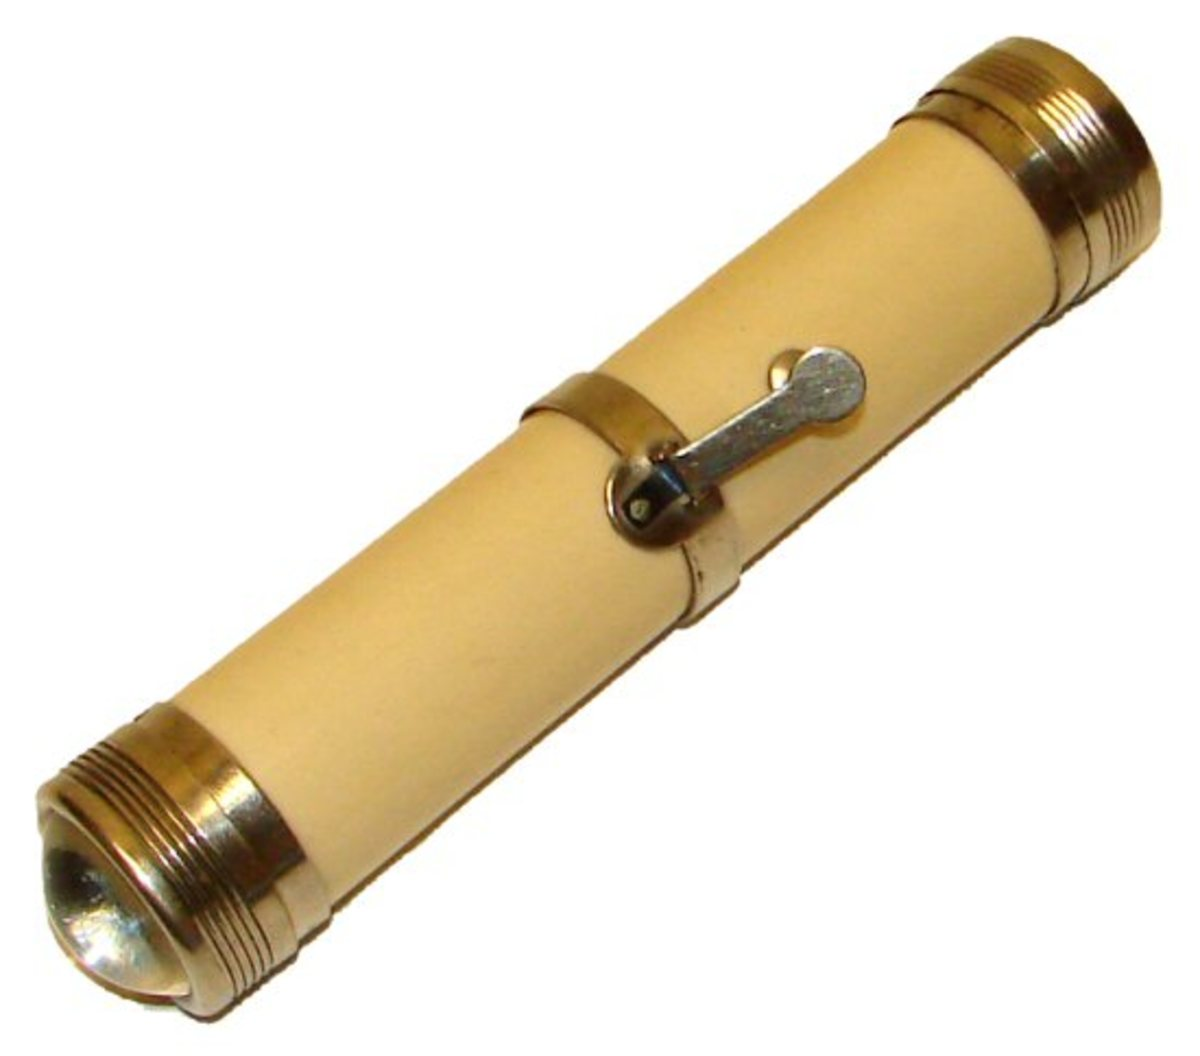 This flashlight was invented in 1899 by David Misell.